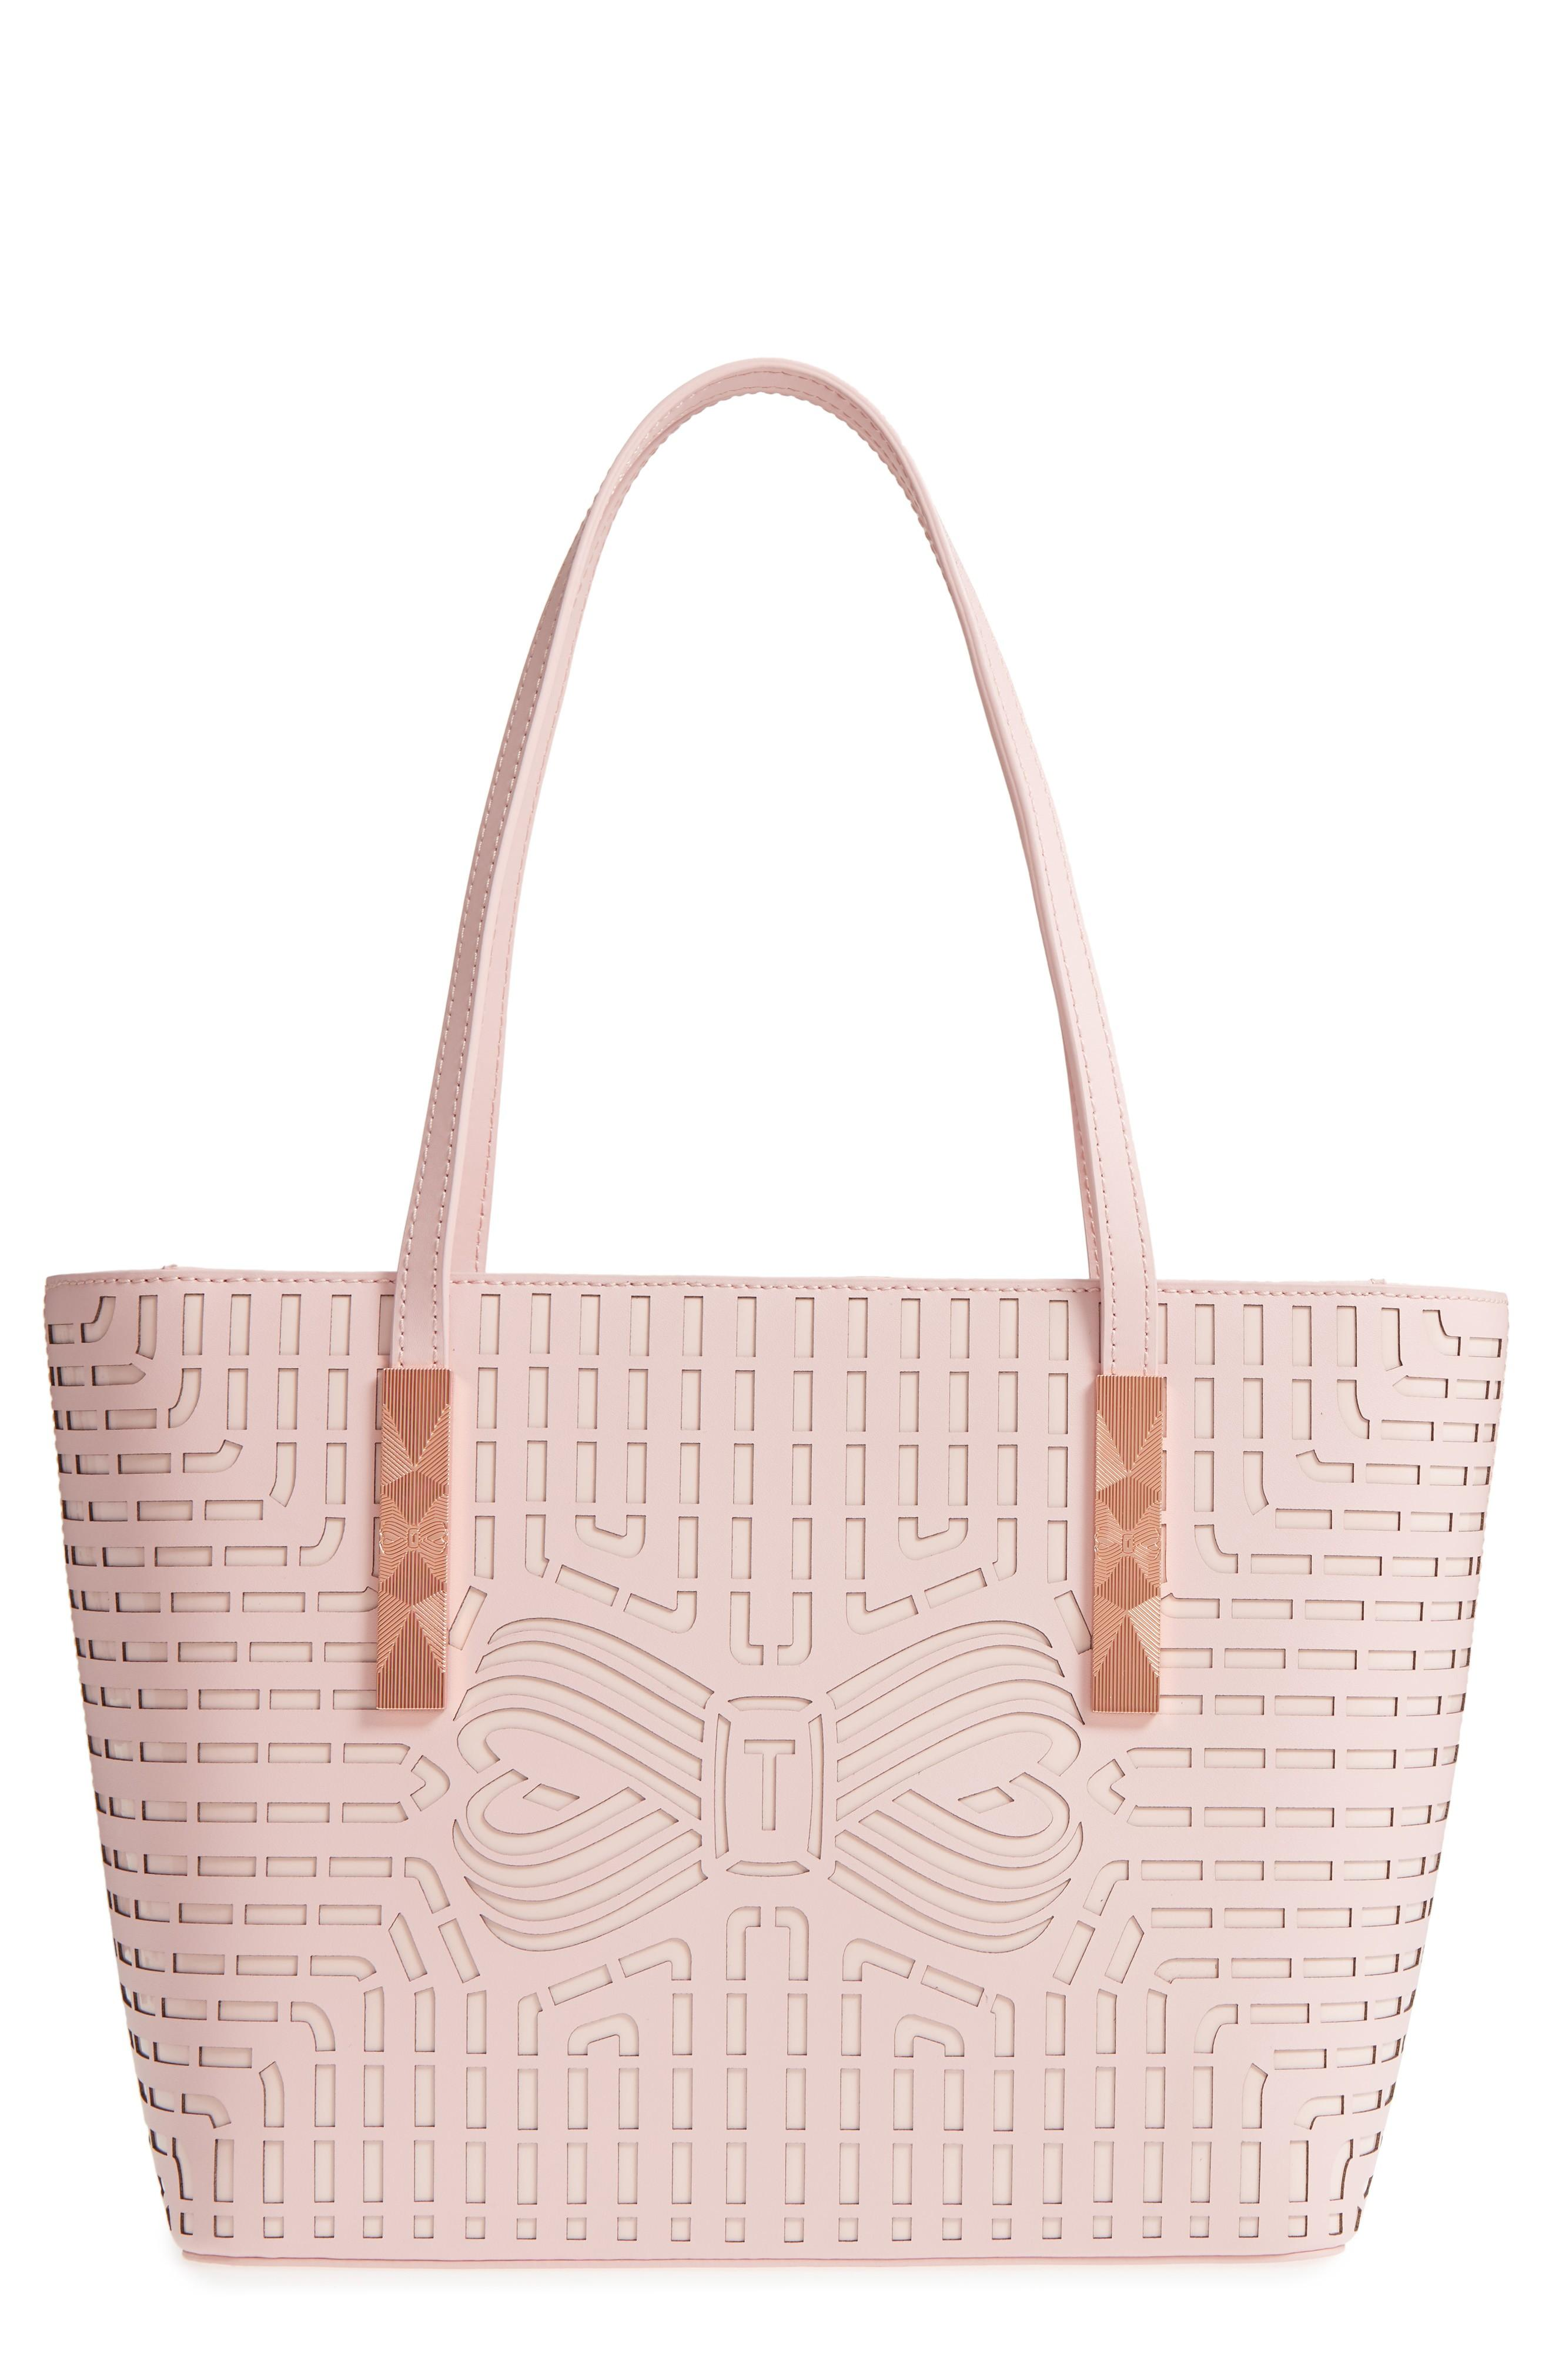 fca4bece91 Ted Baker Breanna Perforated Bow Leather Shopper - Pink In Light Pink